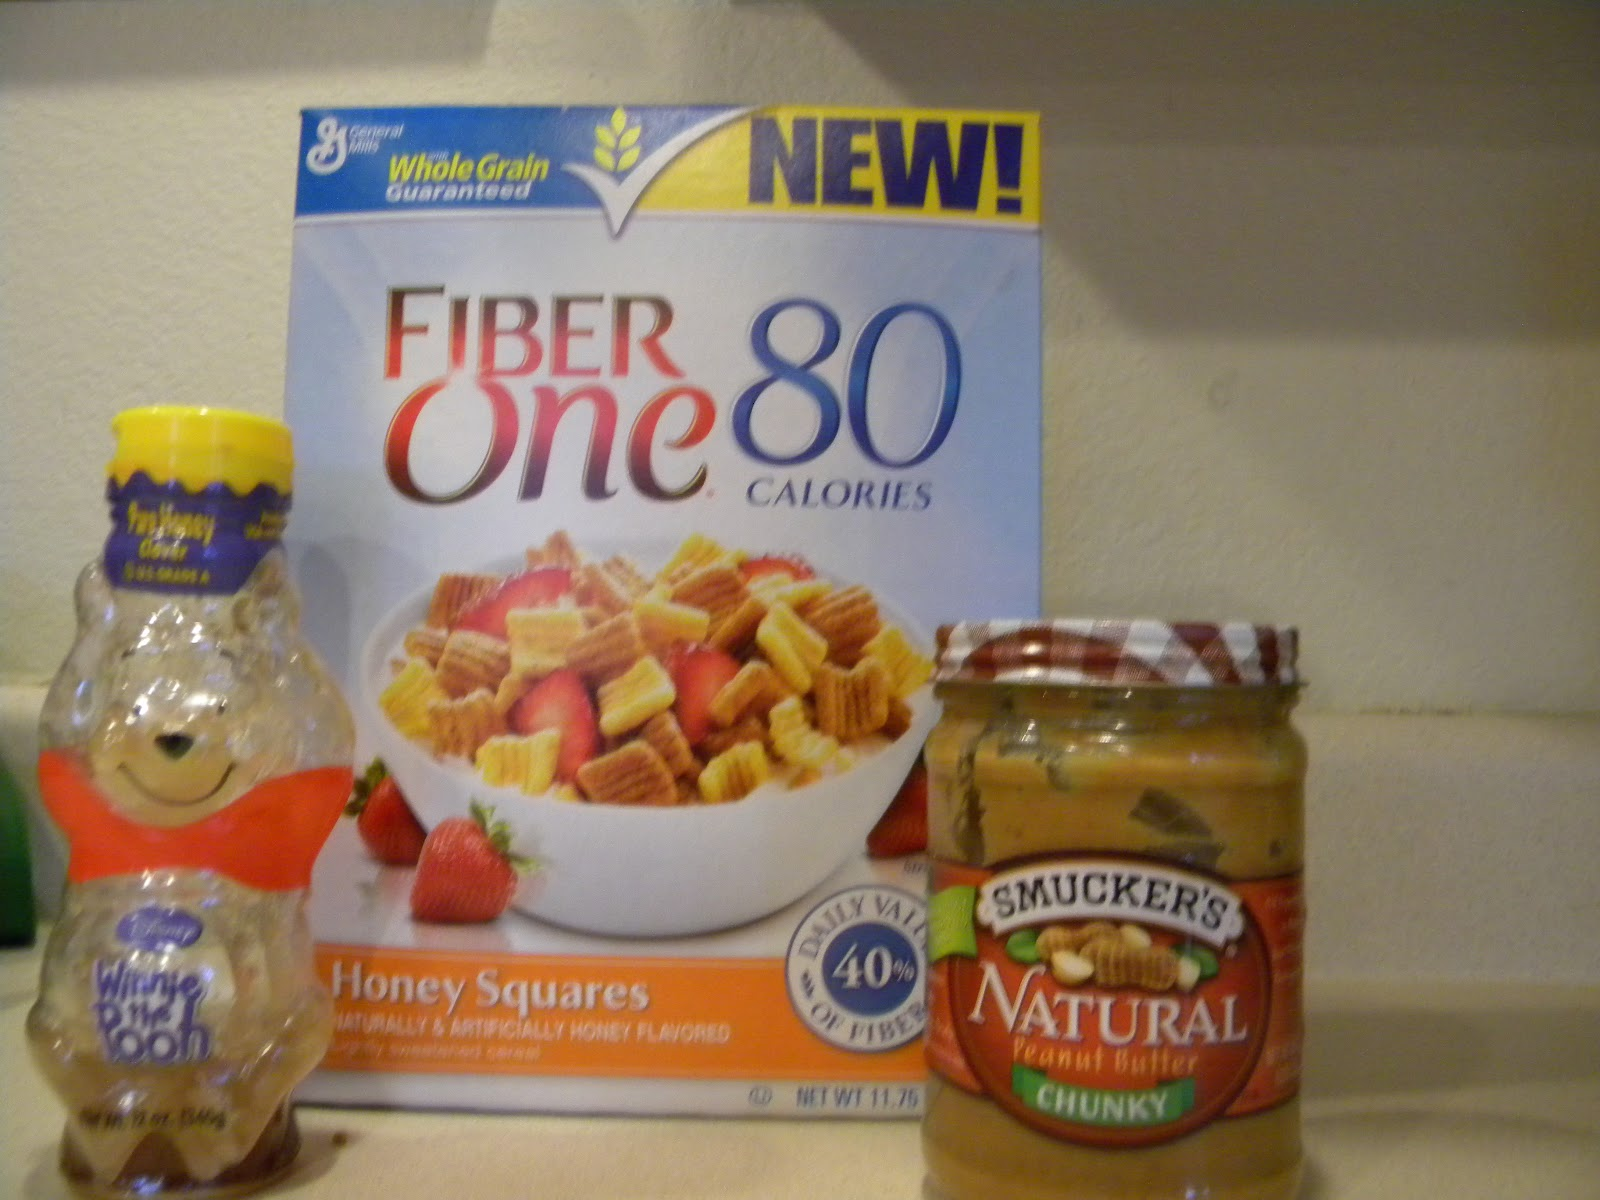 Dec 11, · Save 50¢ on 2 Fiber One when you buy TWO (2) BOXES Fiber One™ Chewy Bars, Fiber One™ 90 Calorie Products (Bars or Brownies), Fiber One™ Protein Chewy Bars, Fiber One™ Streusel Bars, Fiber One™ Cheesecake Bars, Fiber One™ Cookies, Fiber One™ Layered Chewy Bars, Fiber One™ Protein Nut Bars, Fiber One™ Brownie Bites, Fiber One™ Cookie Bites, Fiber One™ Mini Bars, OR Fiber.